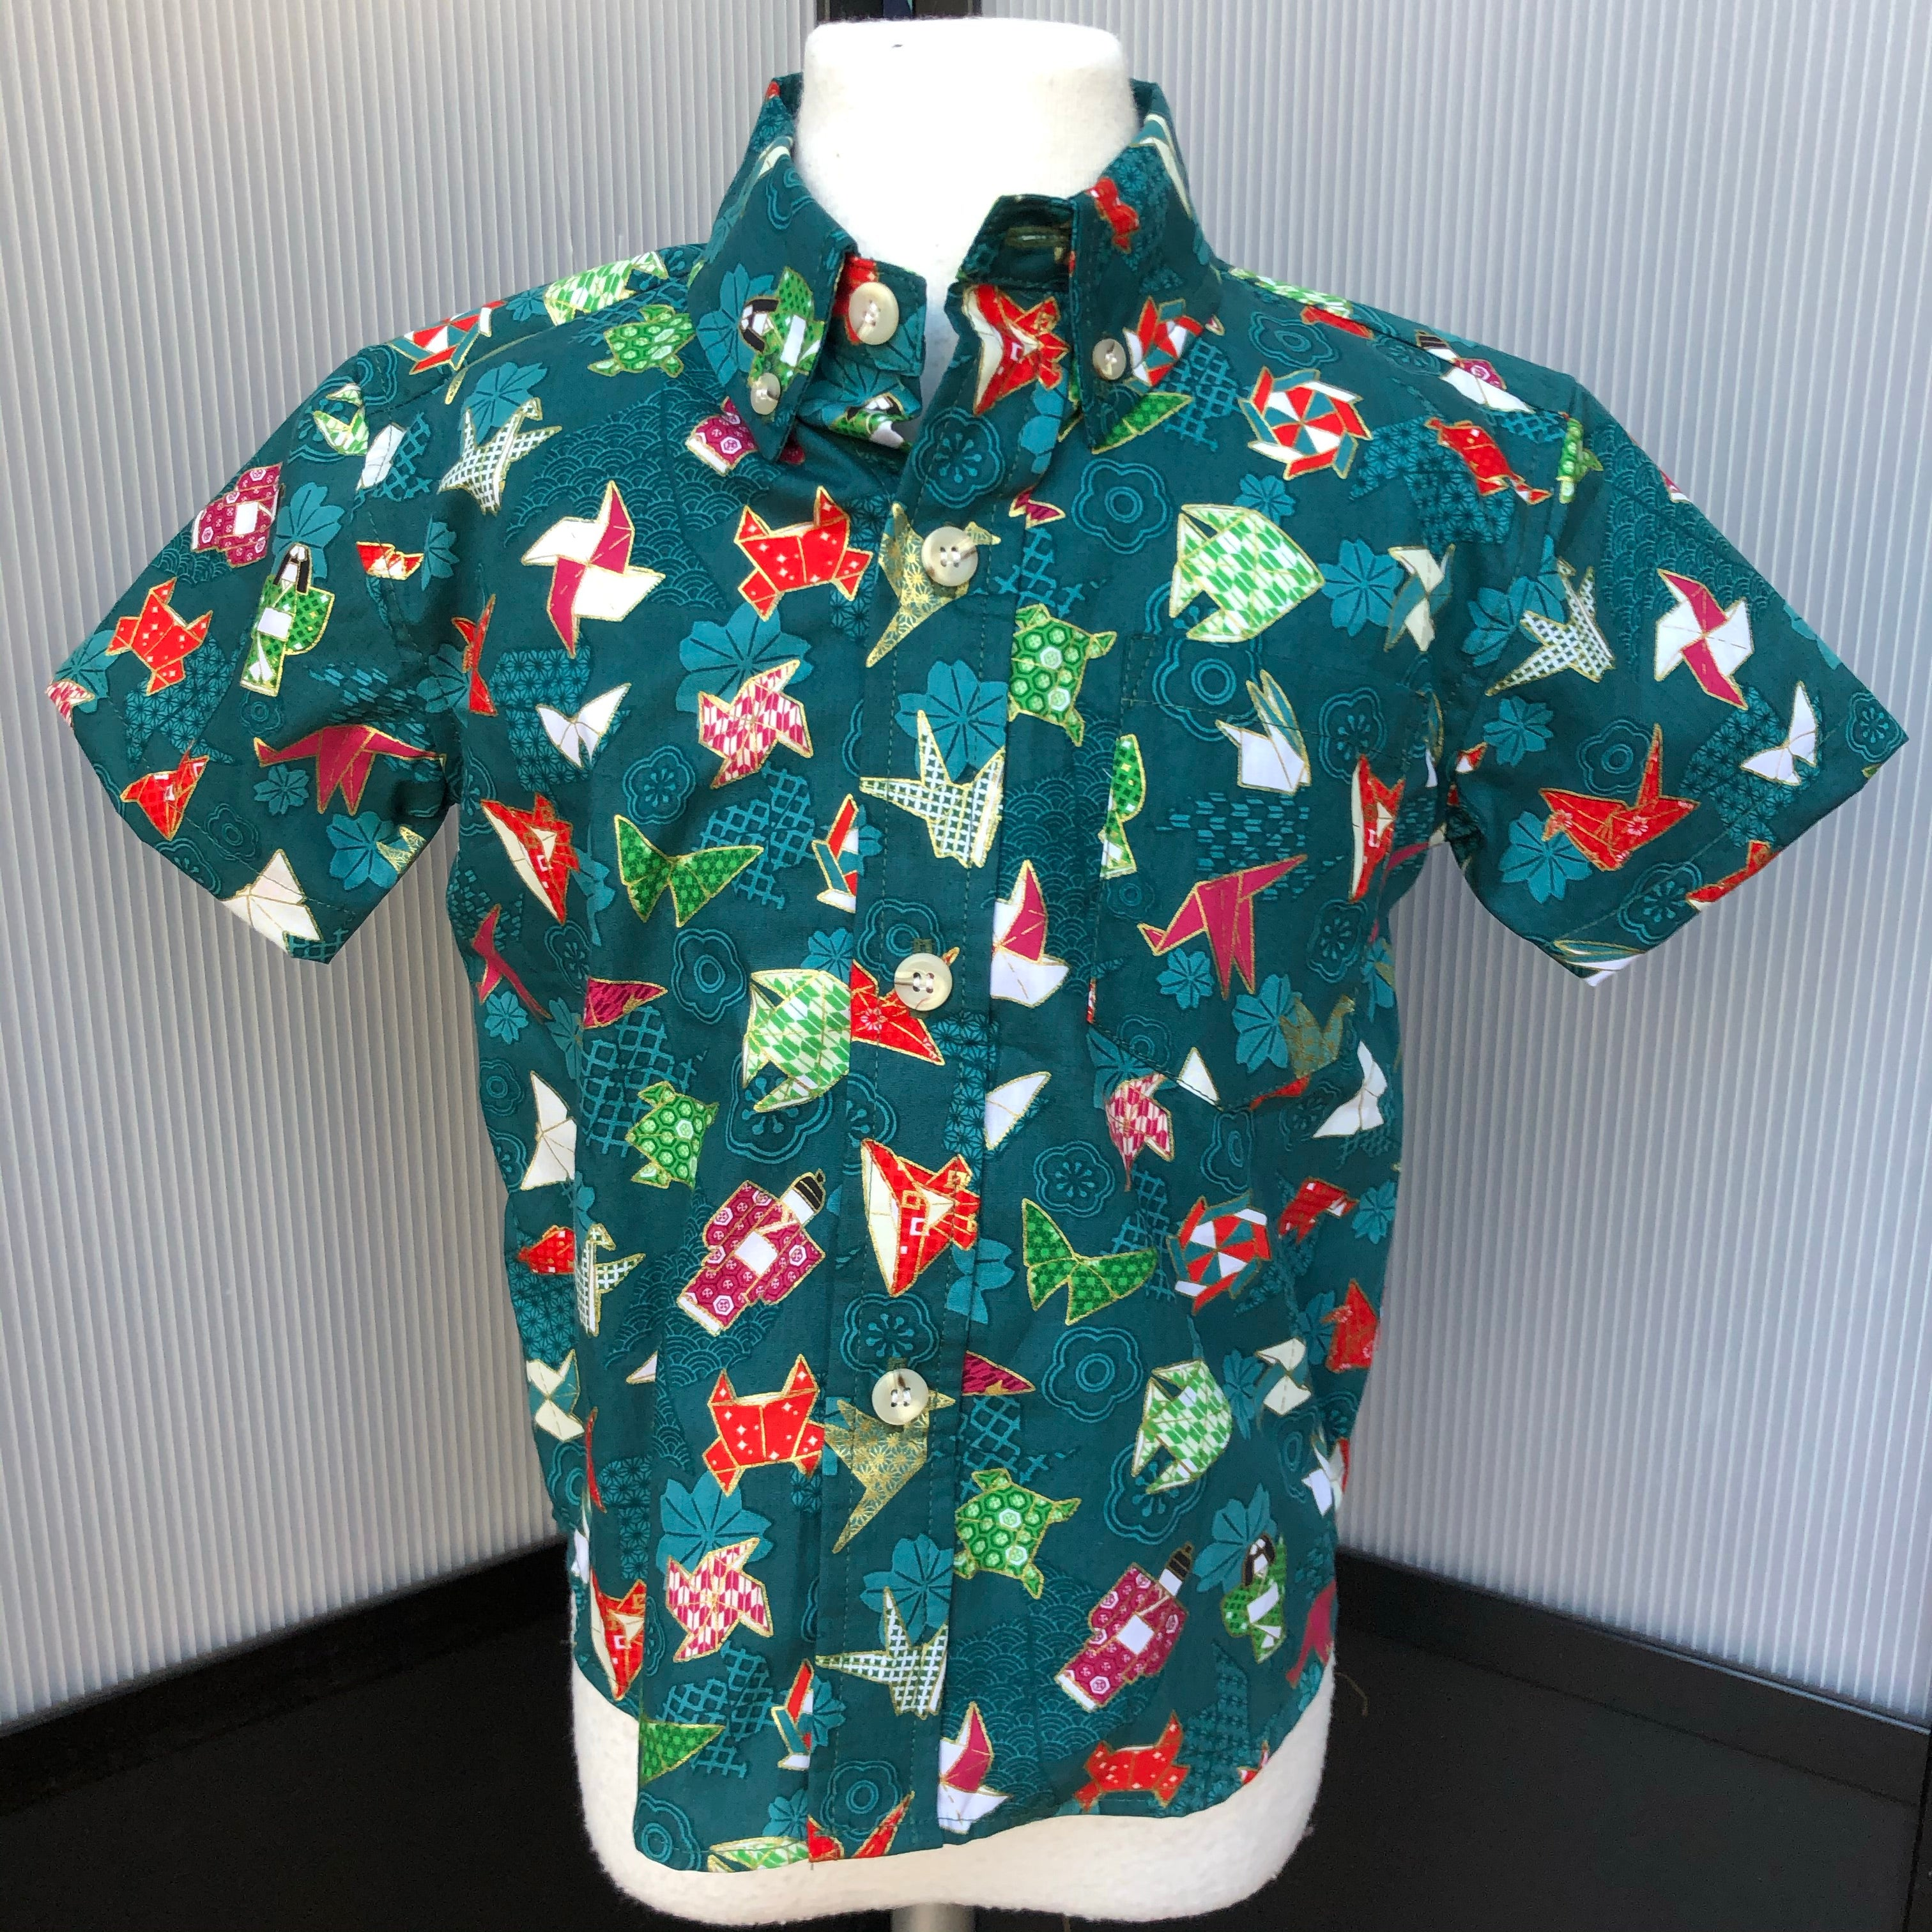 Boy's Shirt: Japanese Cotton, Origami, Green